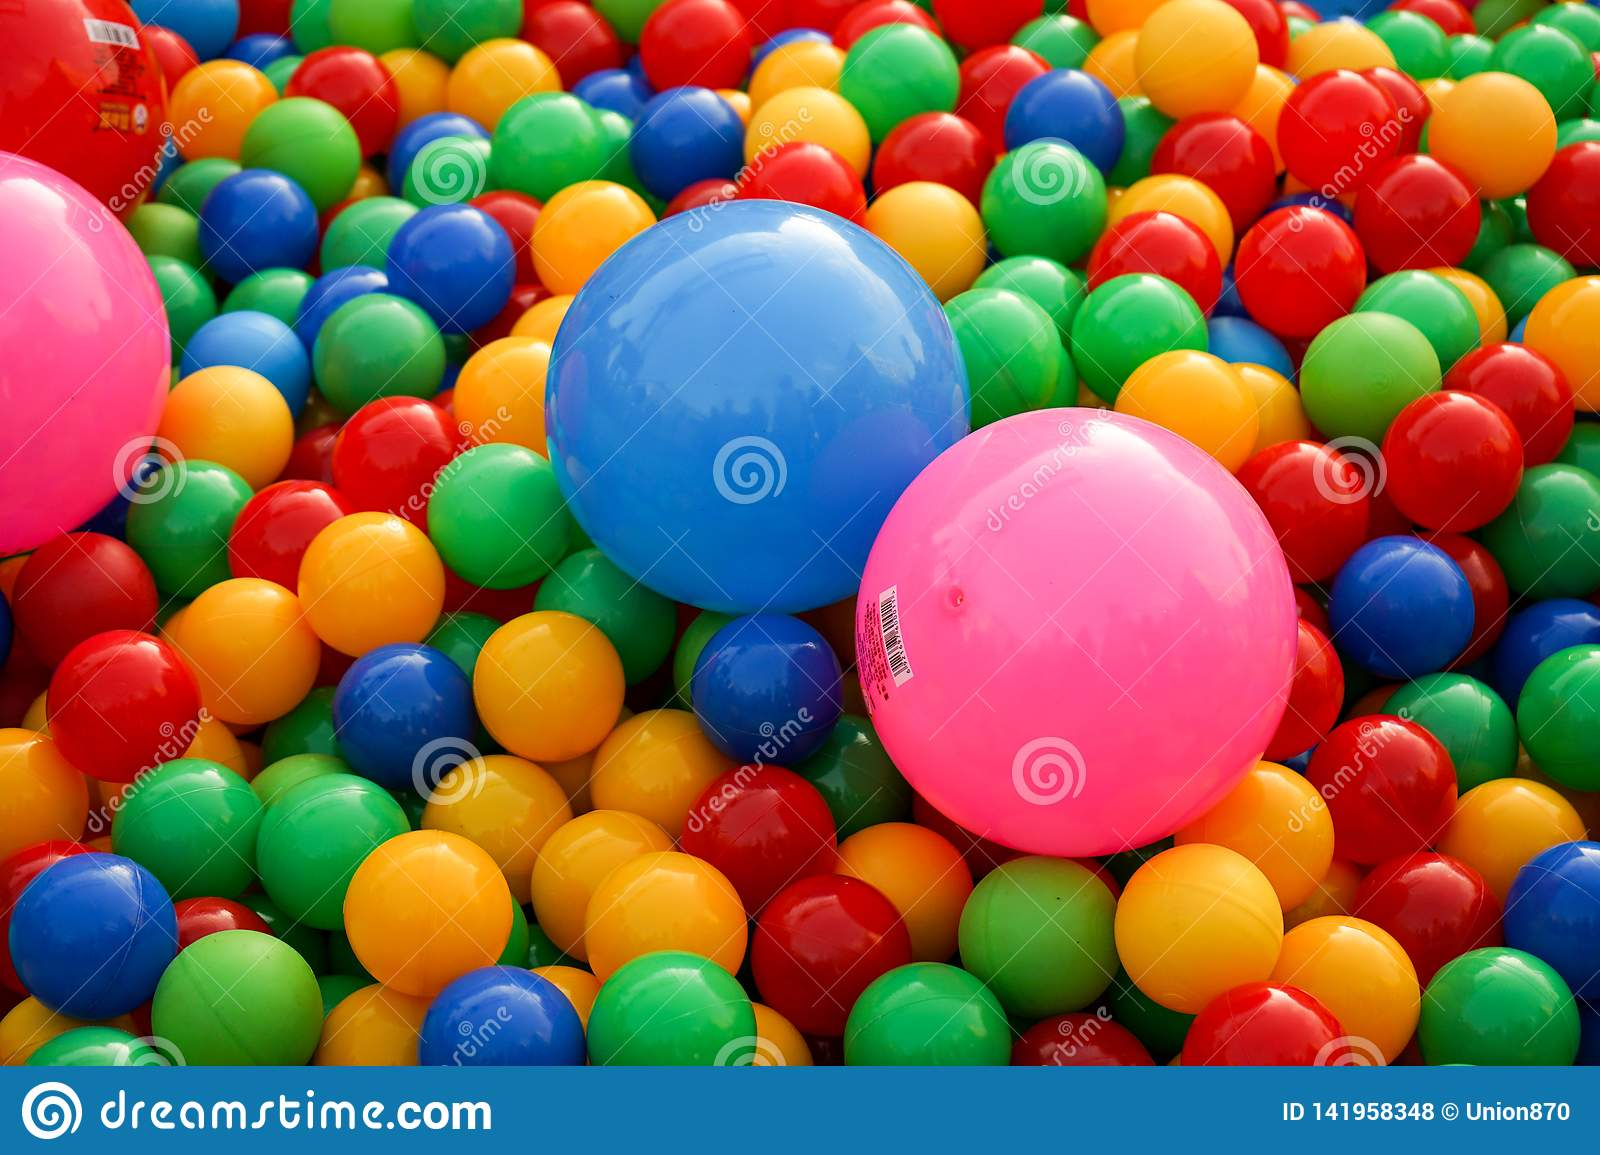 Small balls of different colors on the Playground